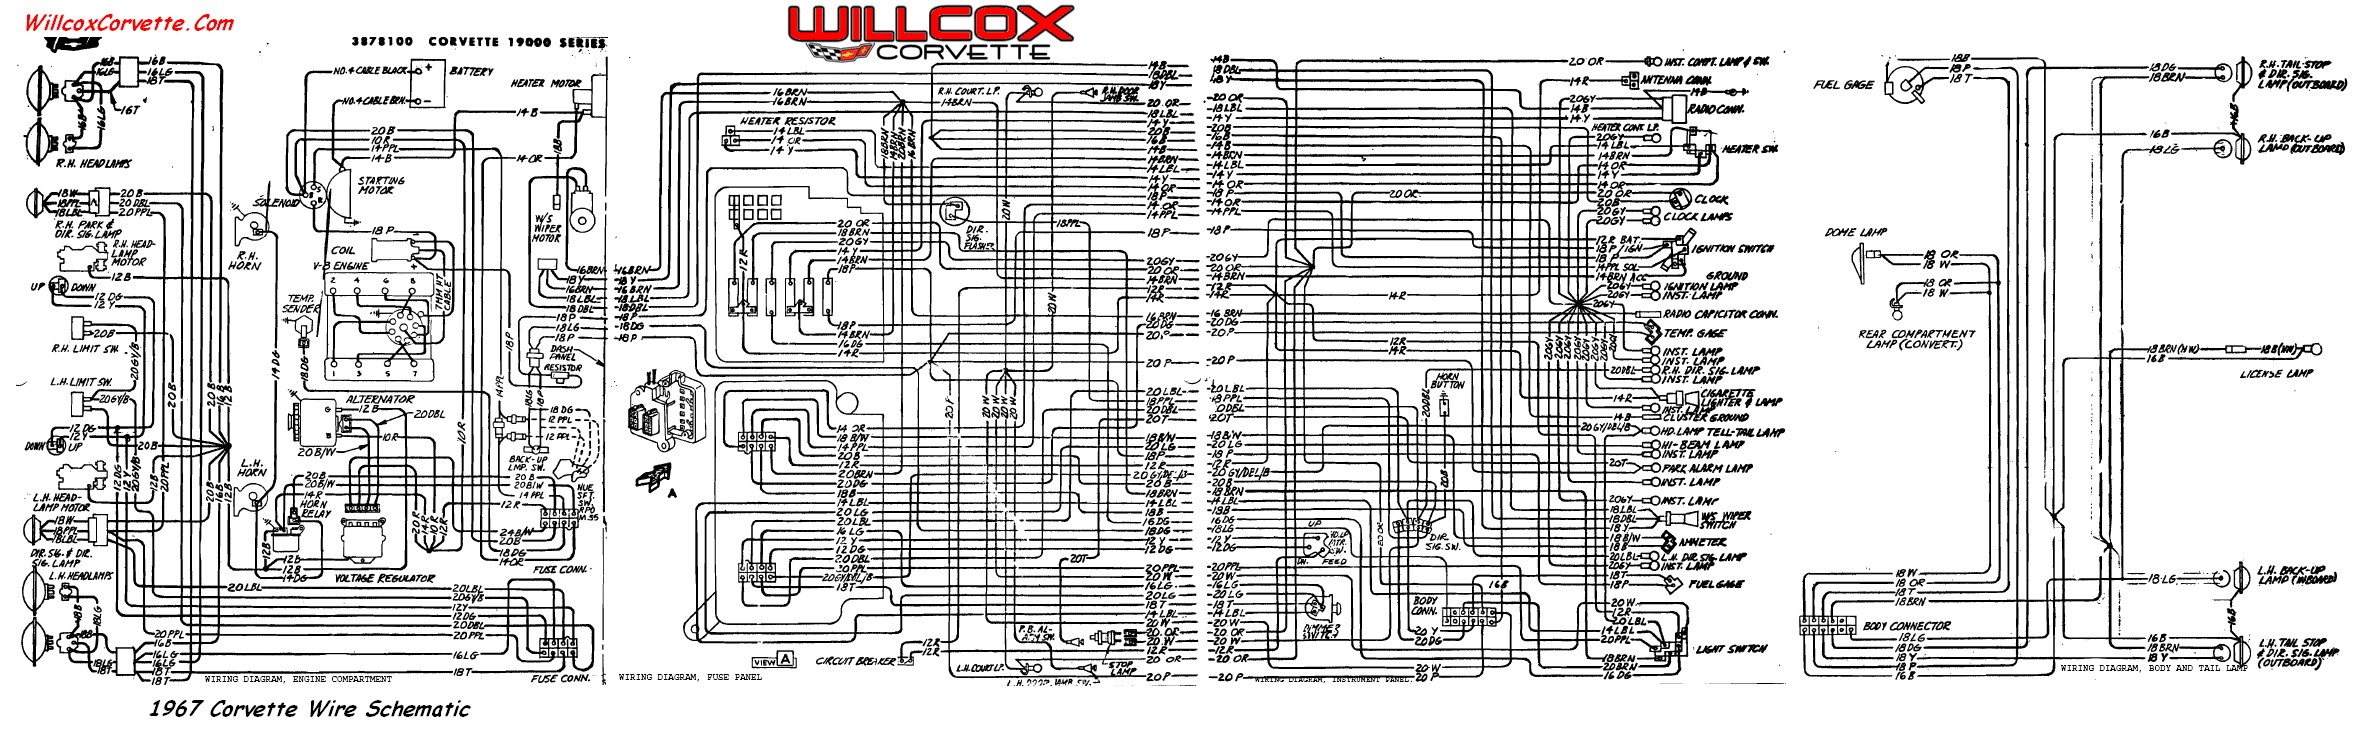 1984 C4 Corvette Wiring Diagram Trusted K10 Ac Data Diagrams U2022 Chevy